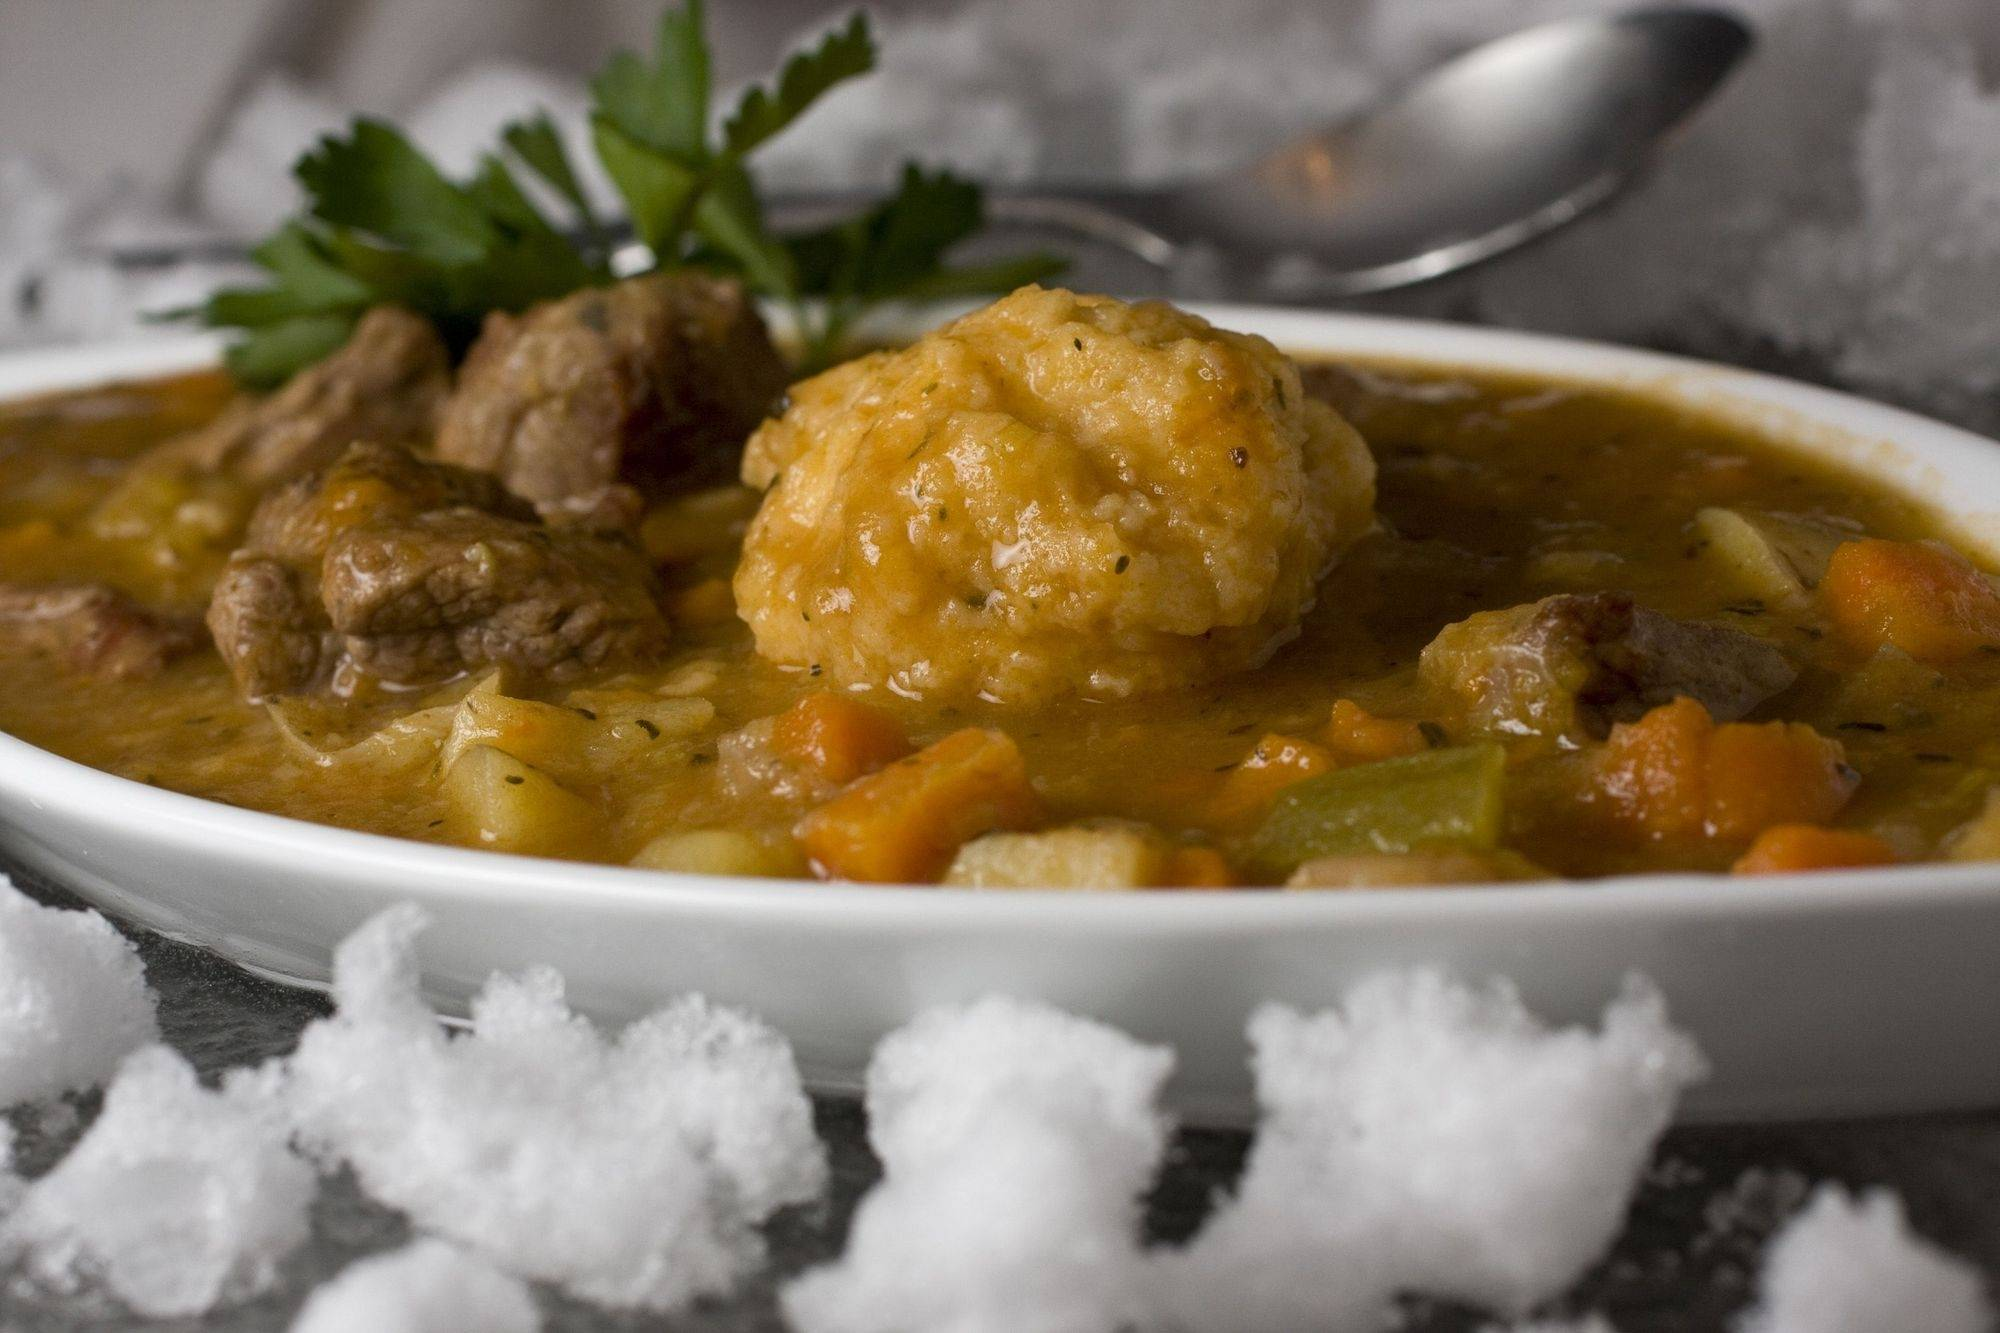 A large dumpling sits like a curling stone on the ice when serving this three-onion lamb stew with dumplings.